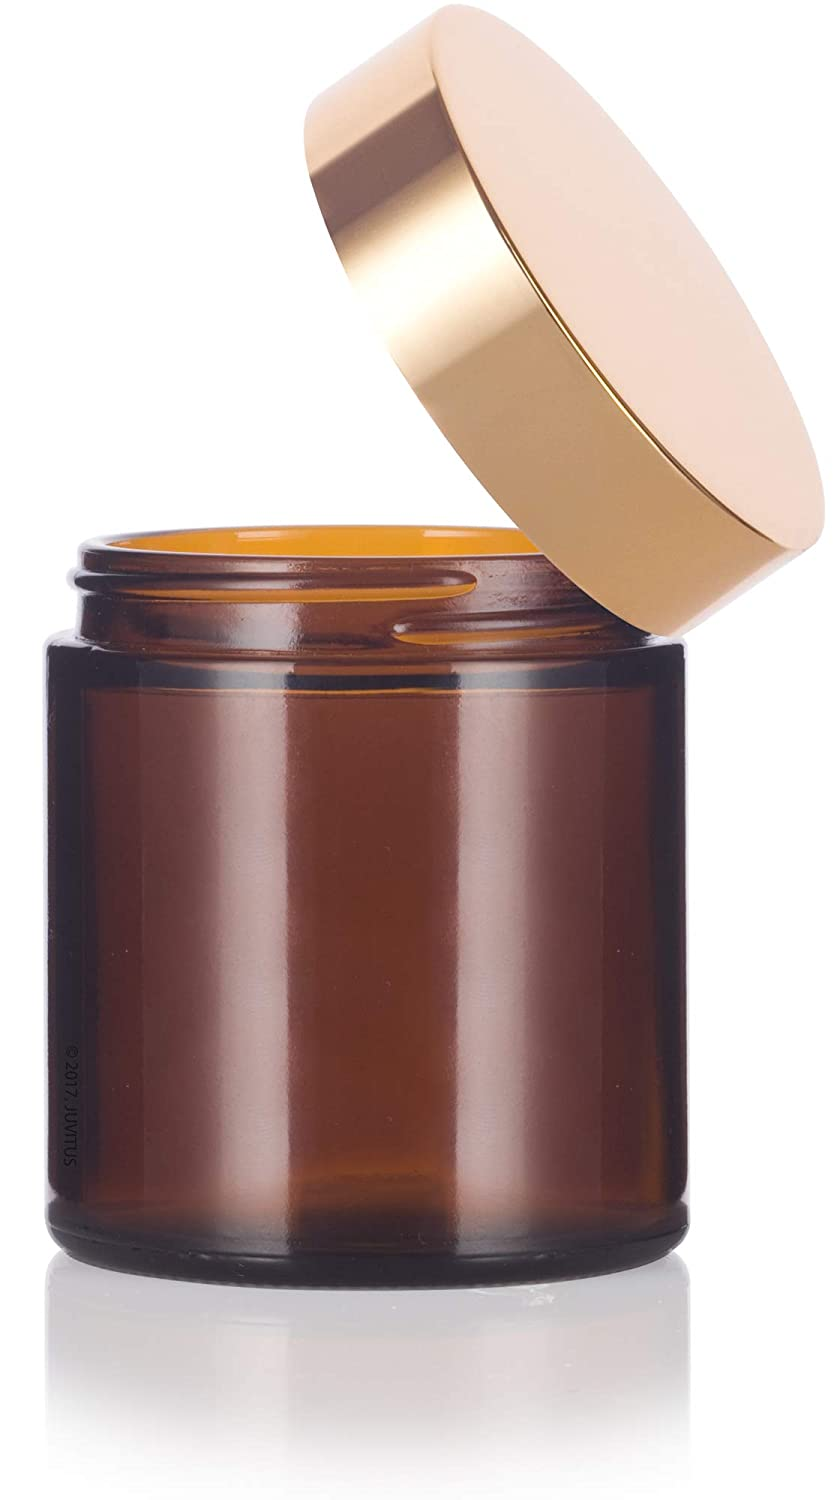 12 pack Amber Thick Glass Straight Sided Jar with Gold Metal Overshell Lid 4 oz // 120 ml + Spatulas and Labels JUVITUS